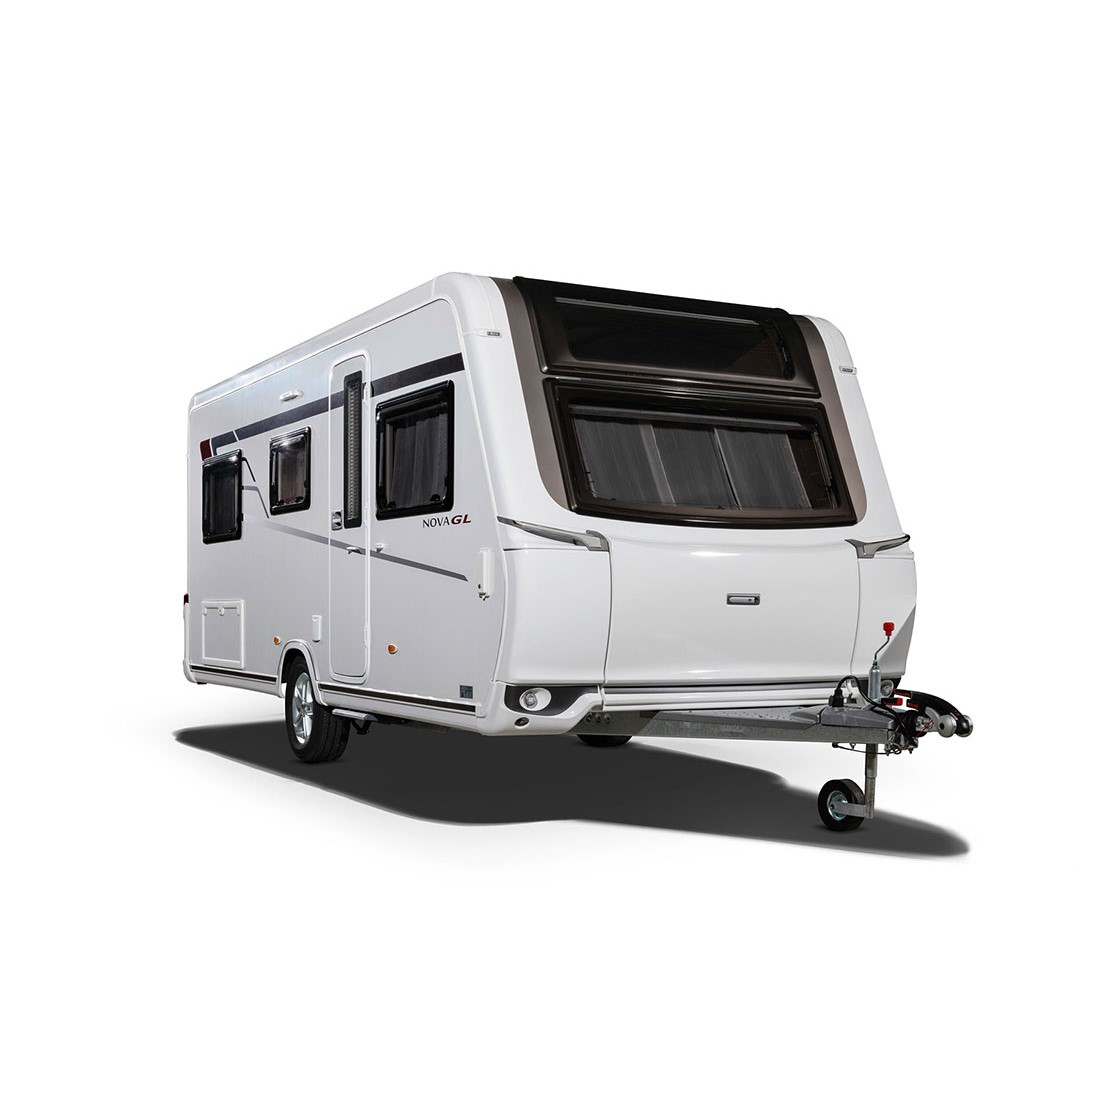 Preston Caravans and Motorhomes - Preston Caravans & Motorhomes